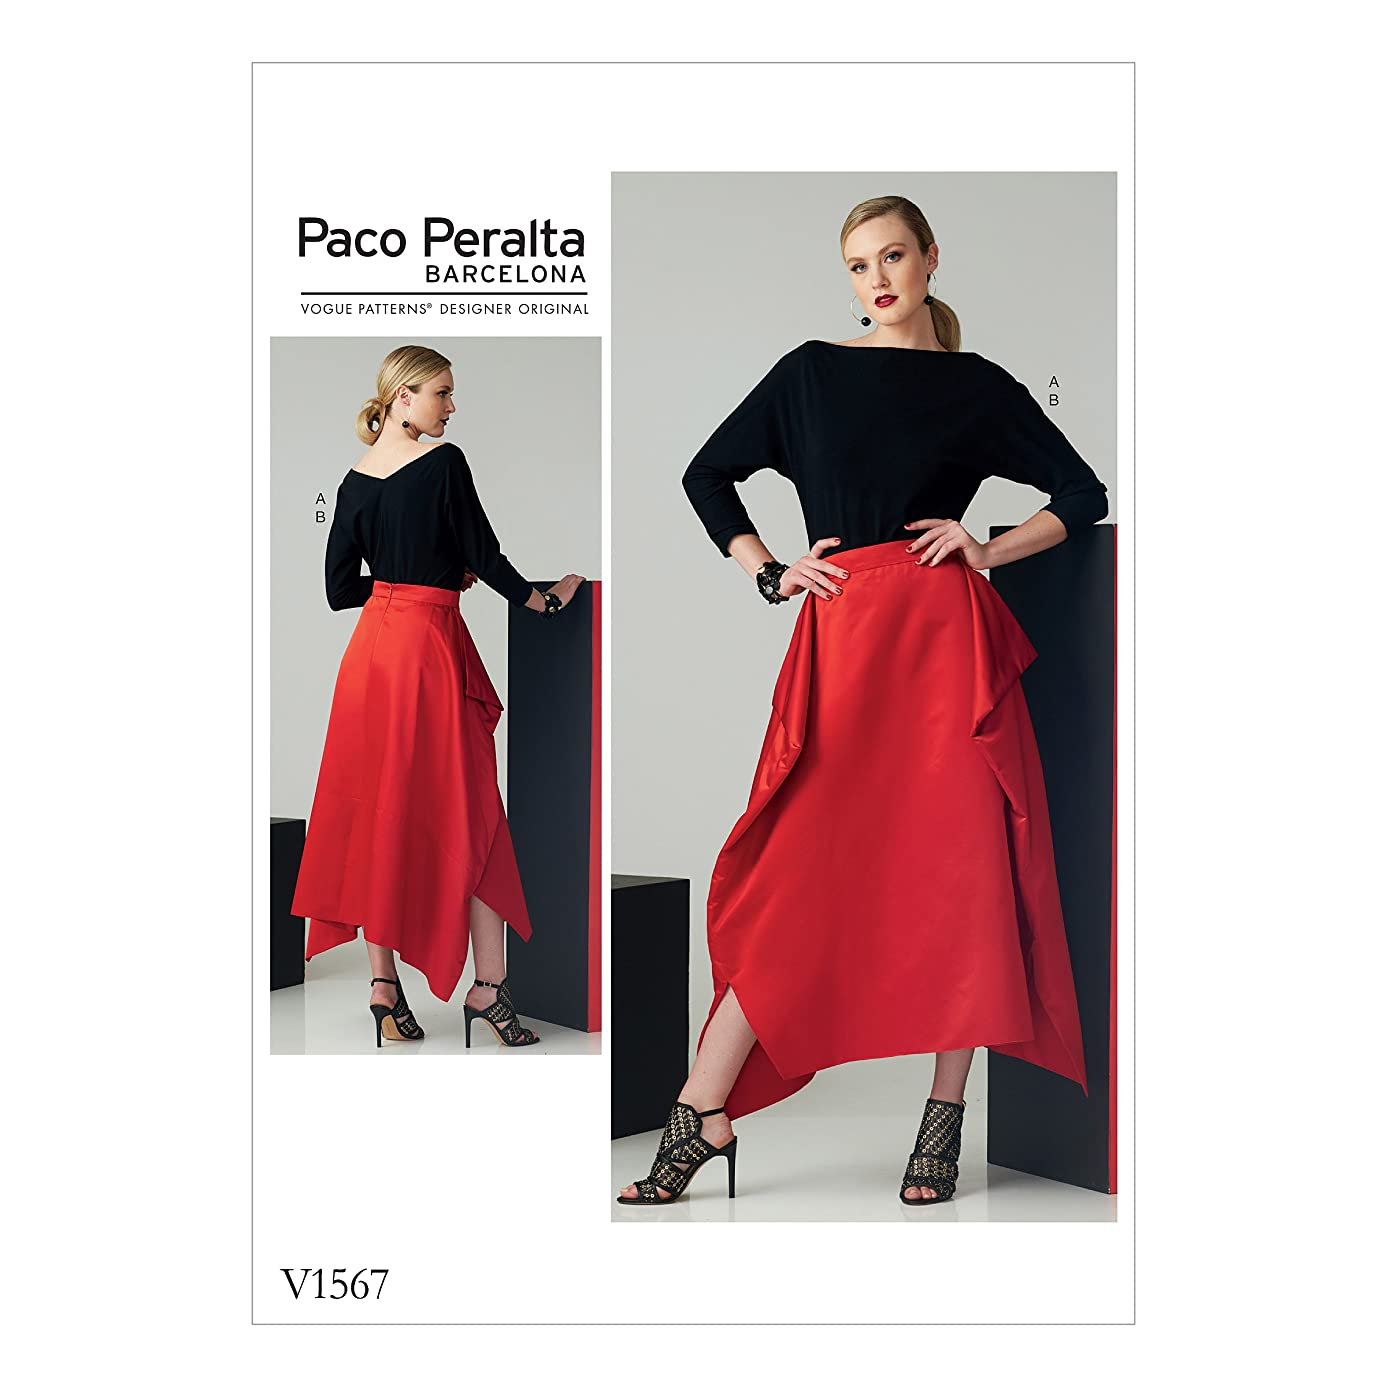 Vogue Patterns V1567E50 Women's Top and Draped Skirt Sewing Pattern by Paco Peralta Sizes 14-22